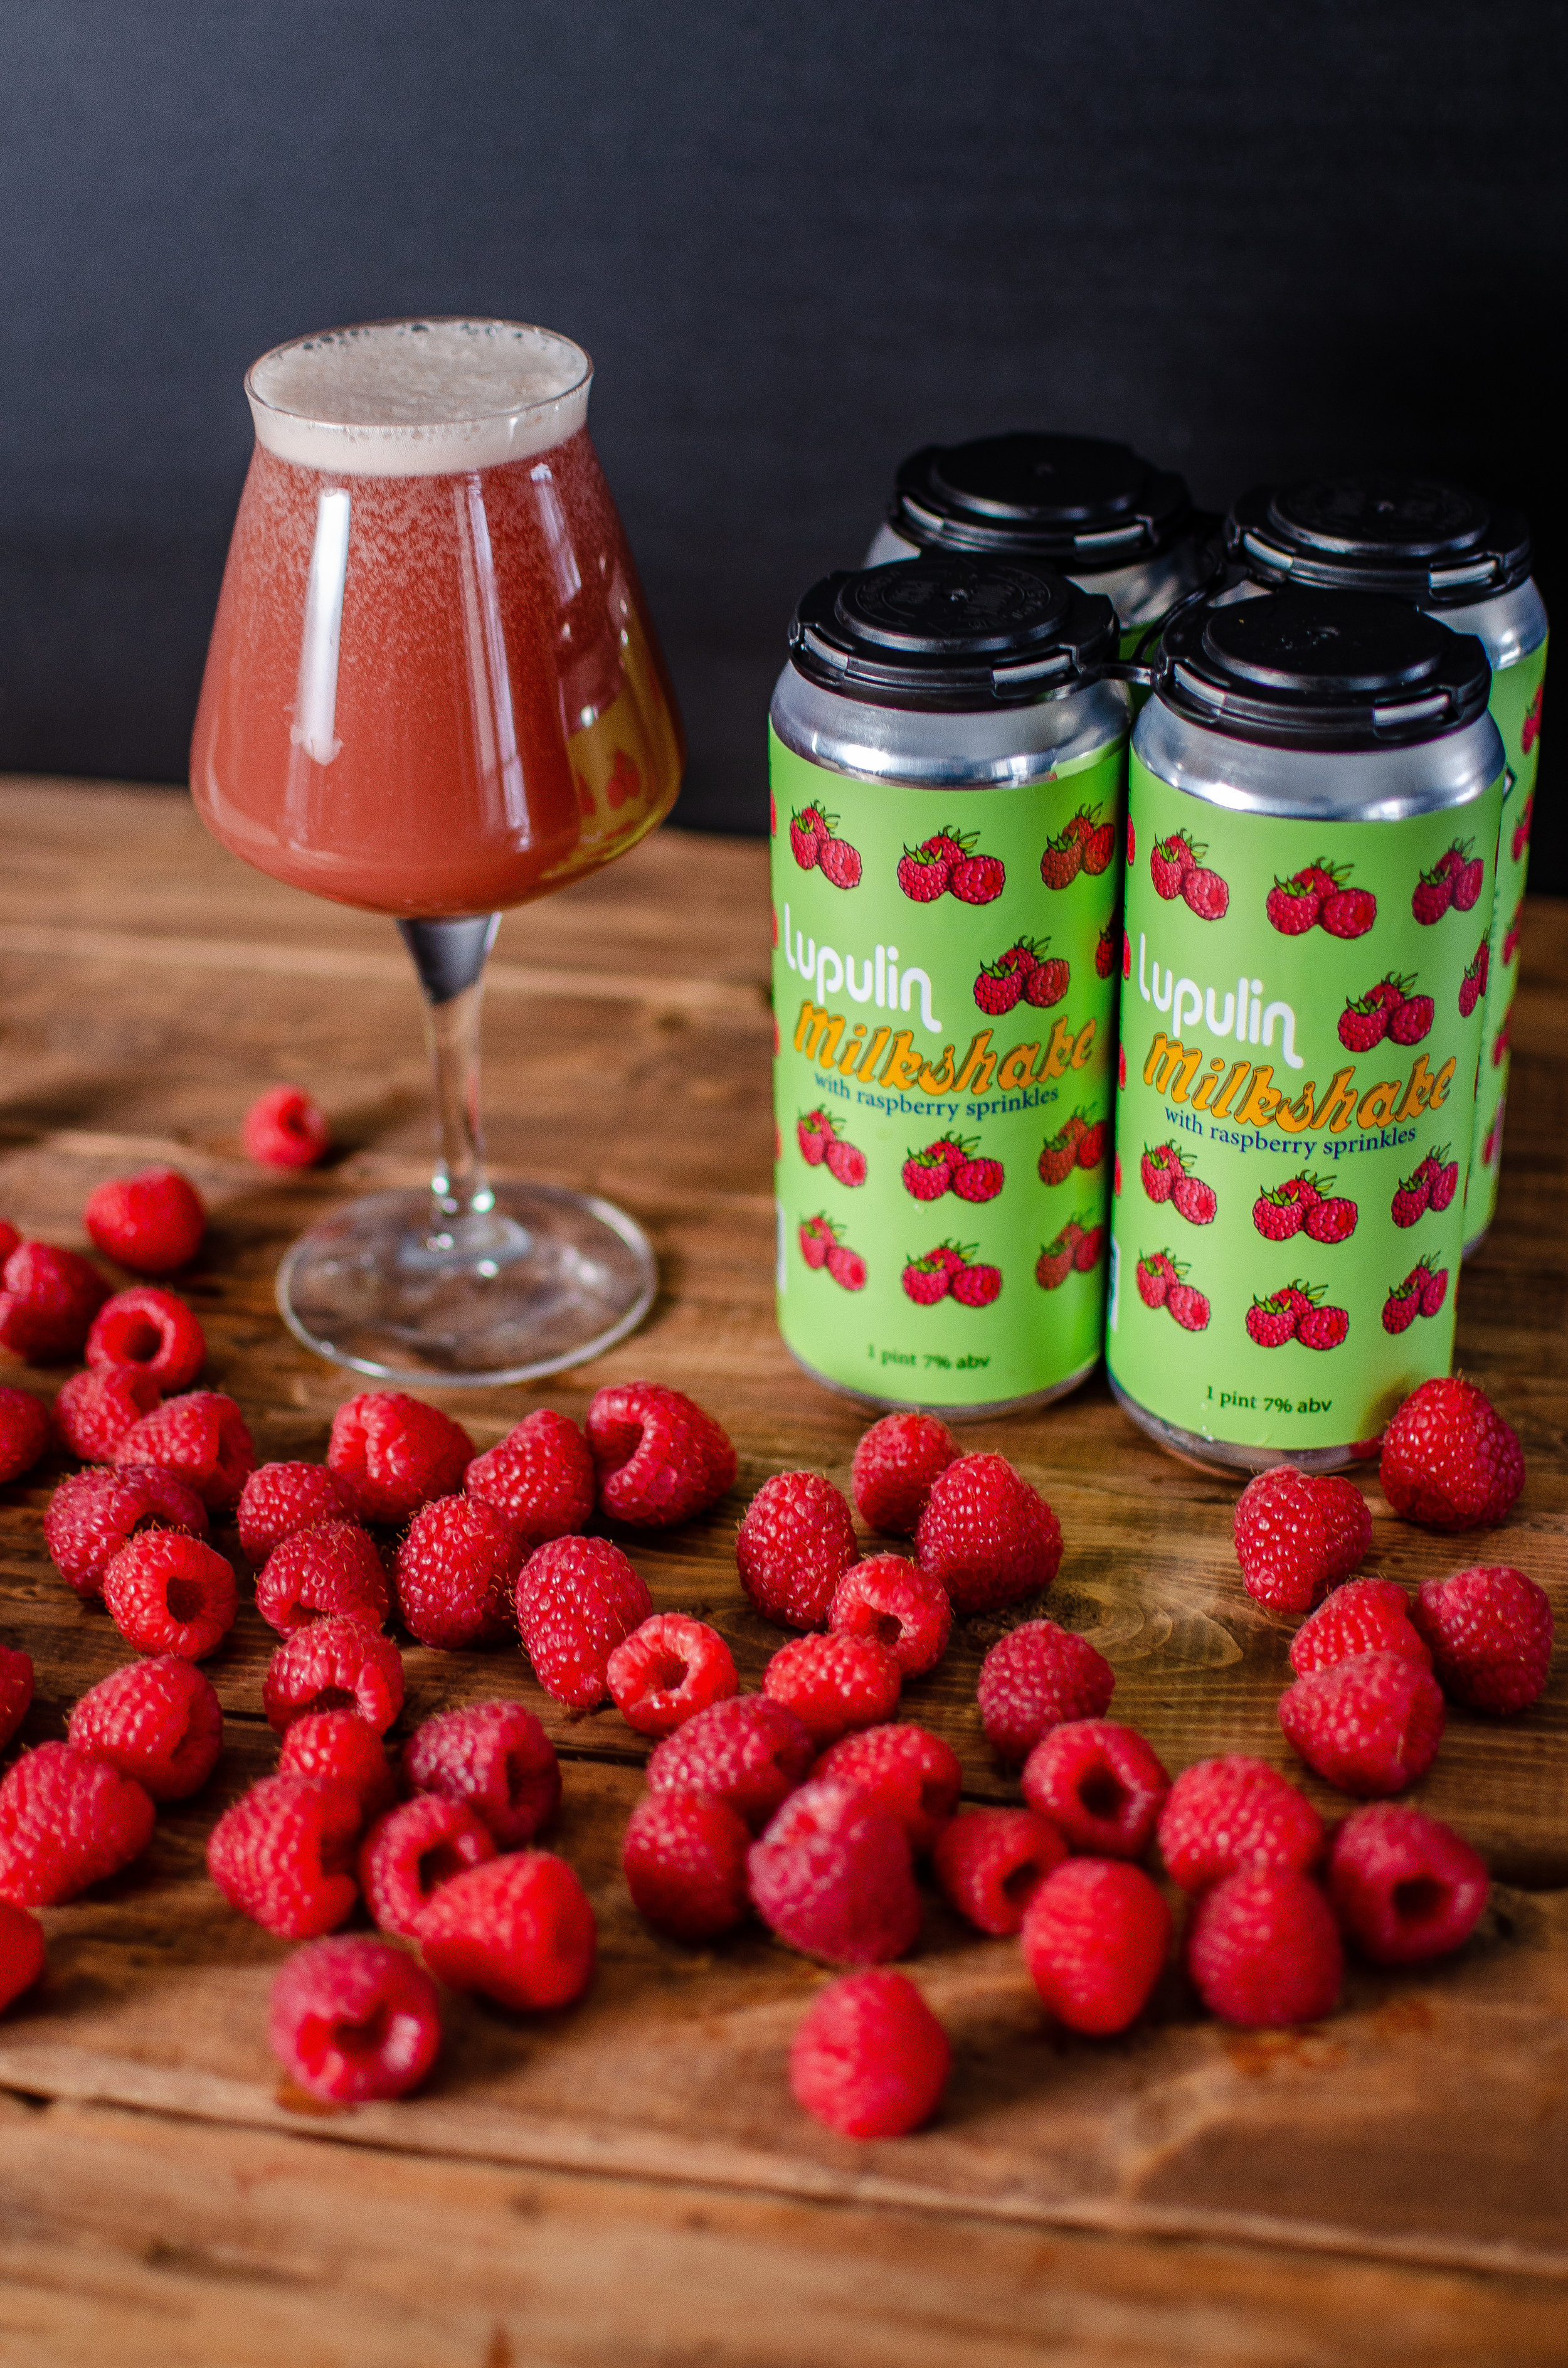 Lupulin Milkshake with Raspberry Sprinkles 7% - A creamy, smooth and fruity IPA with raspberries, vanilla beans and lactose. El Dorado and Mosaic Hops.